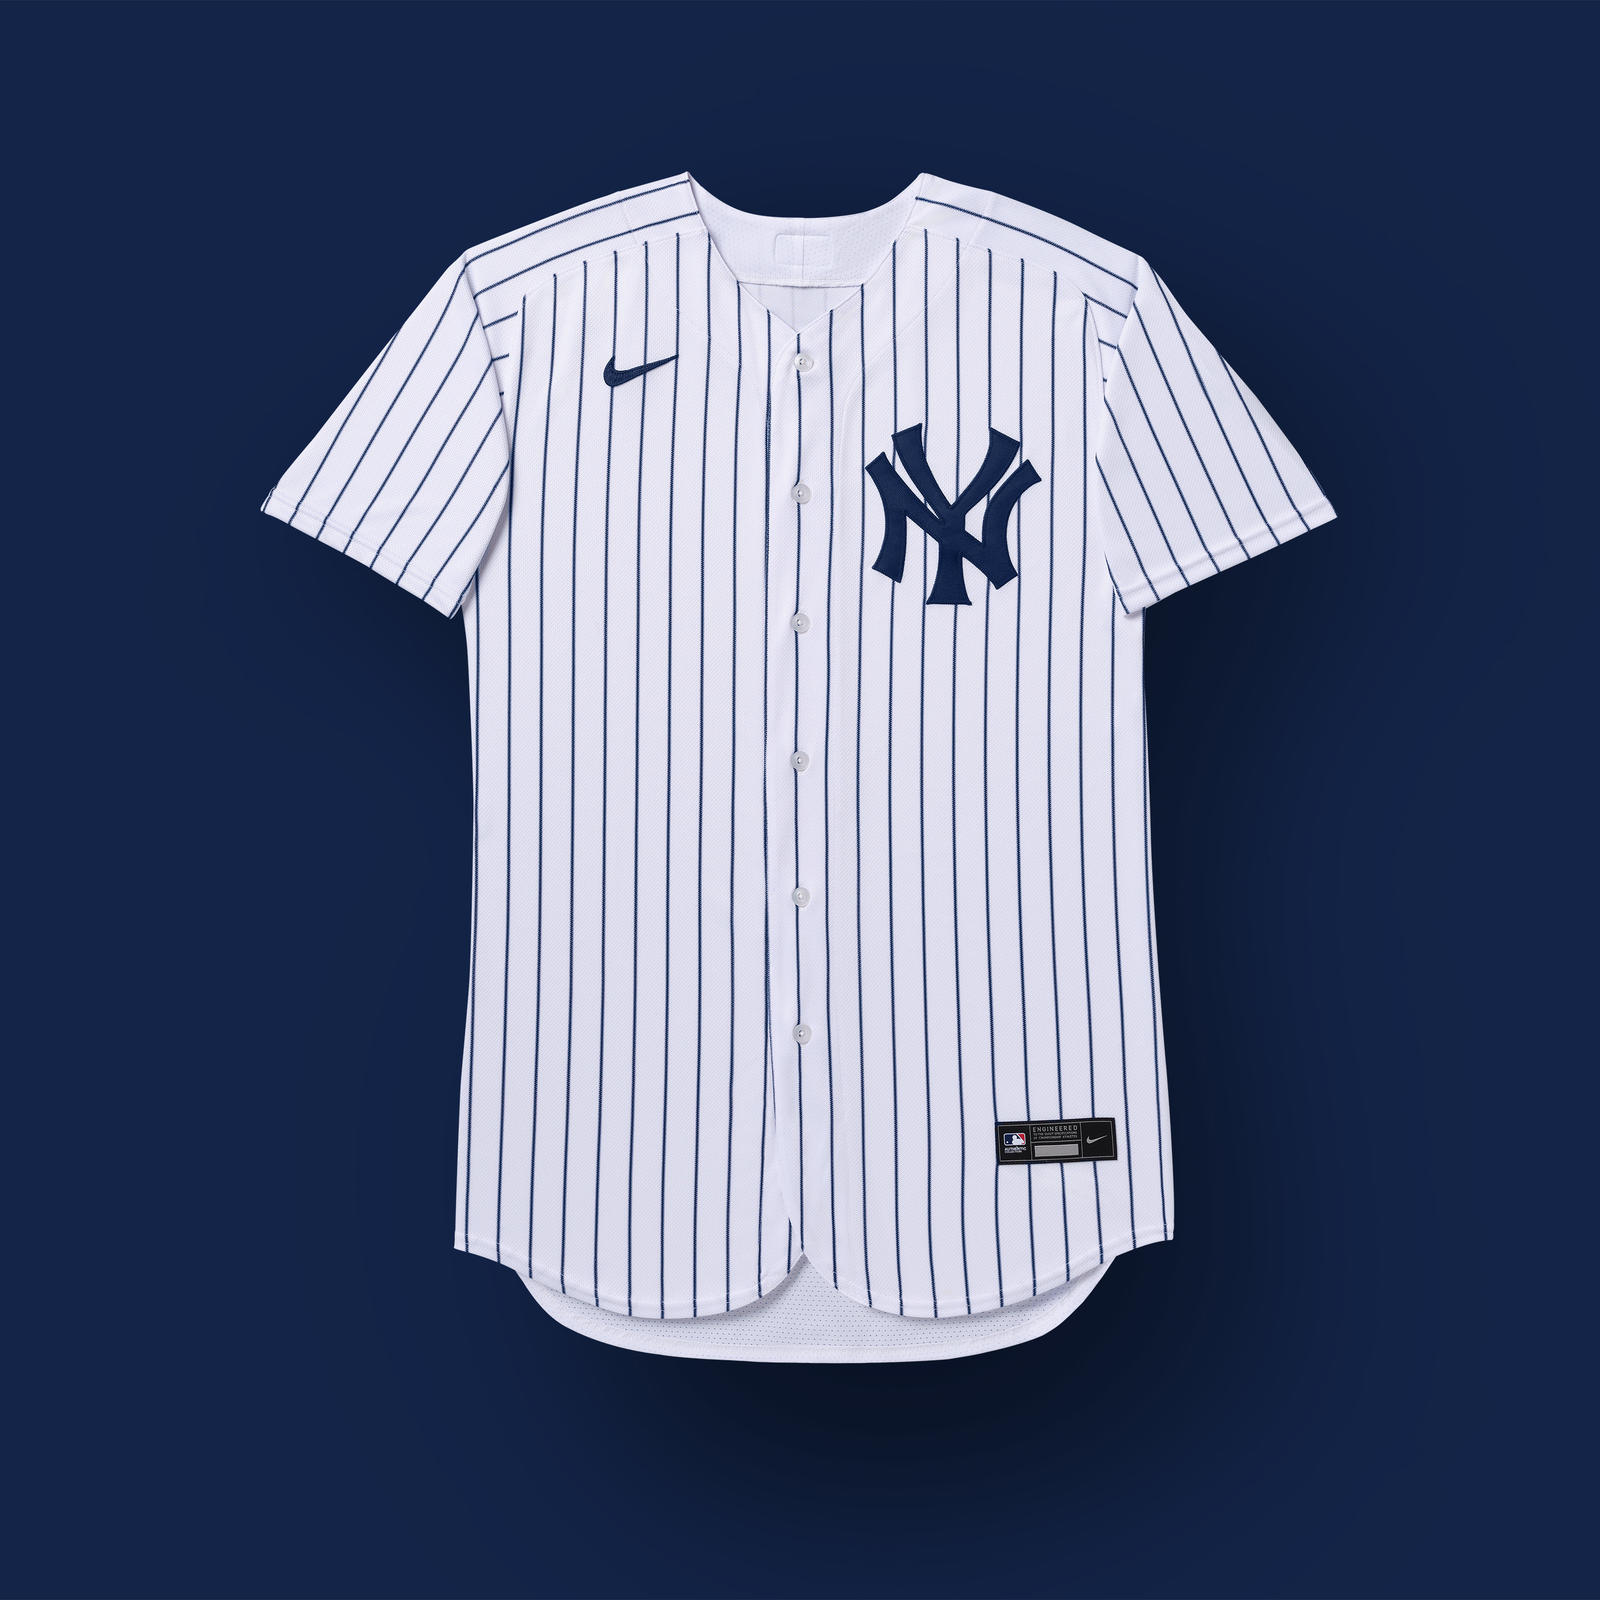 Nike x Major League Baseball Uniforms 2020 Official Images 5